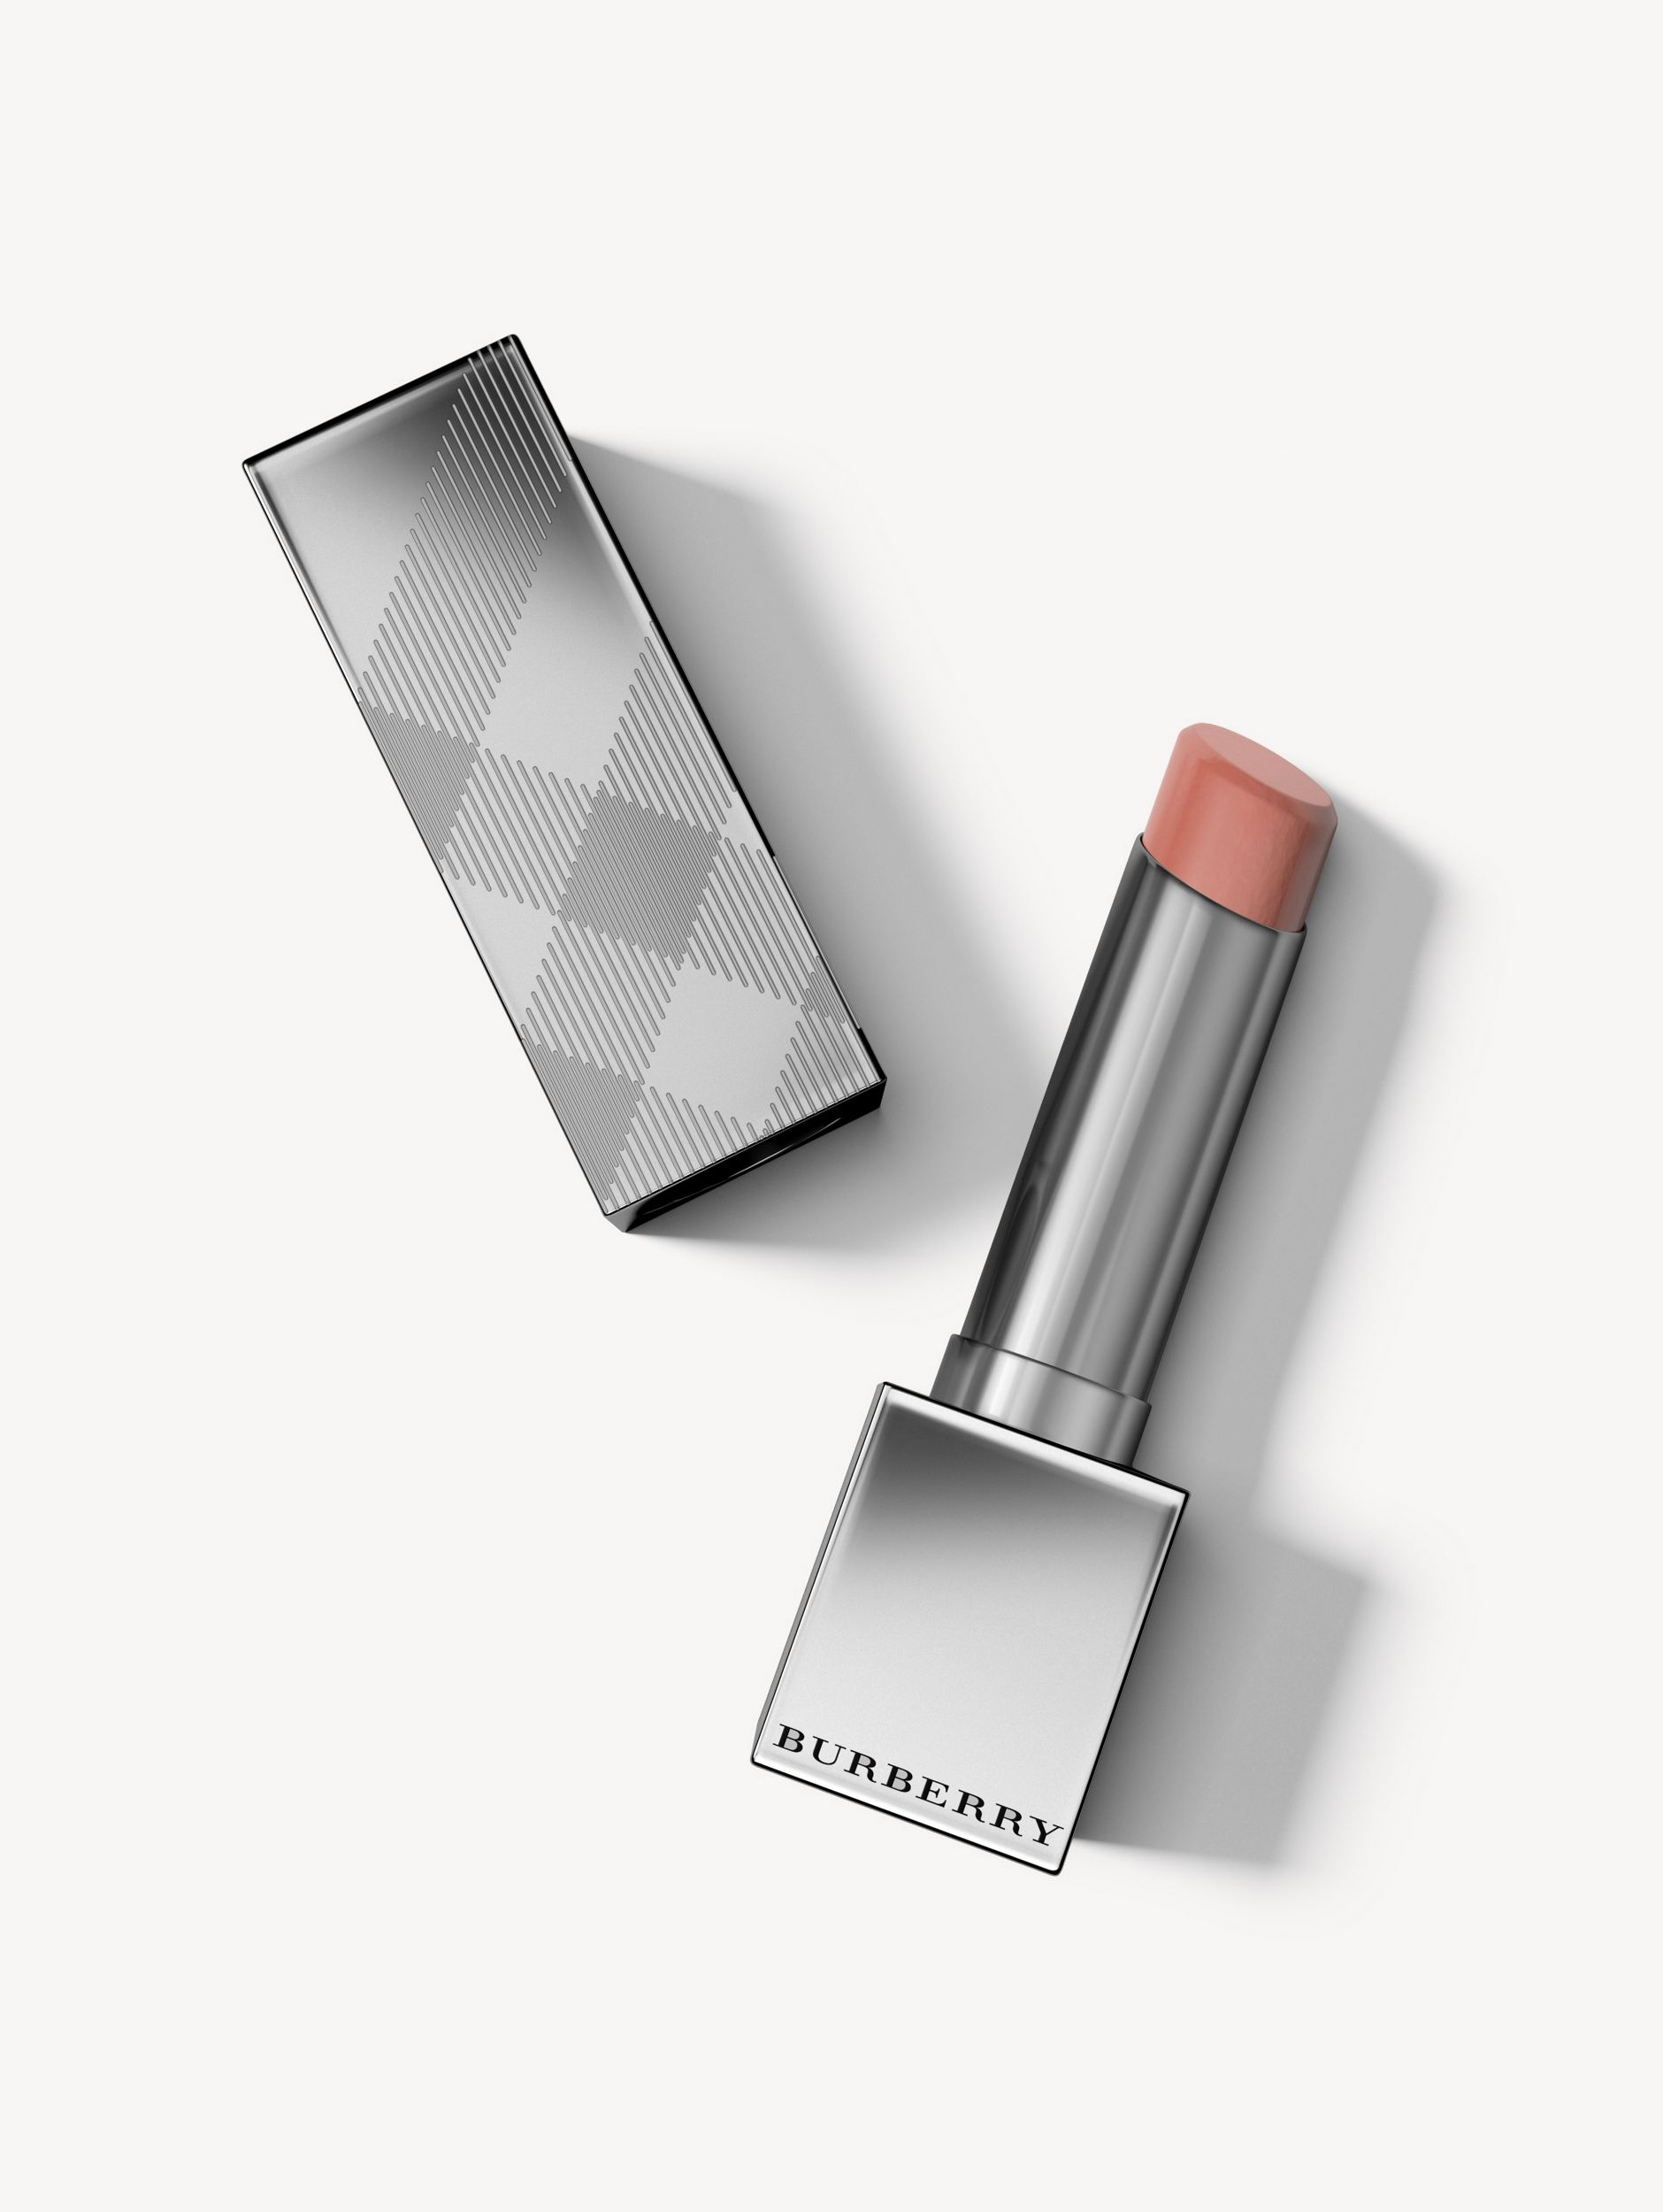 Burberry Kisses Sheer – Nude No.221 - Women | Burberry Canada - 1